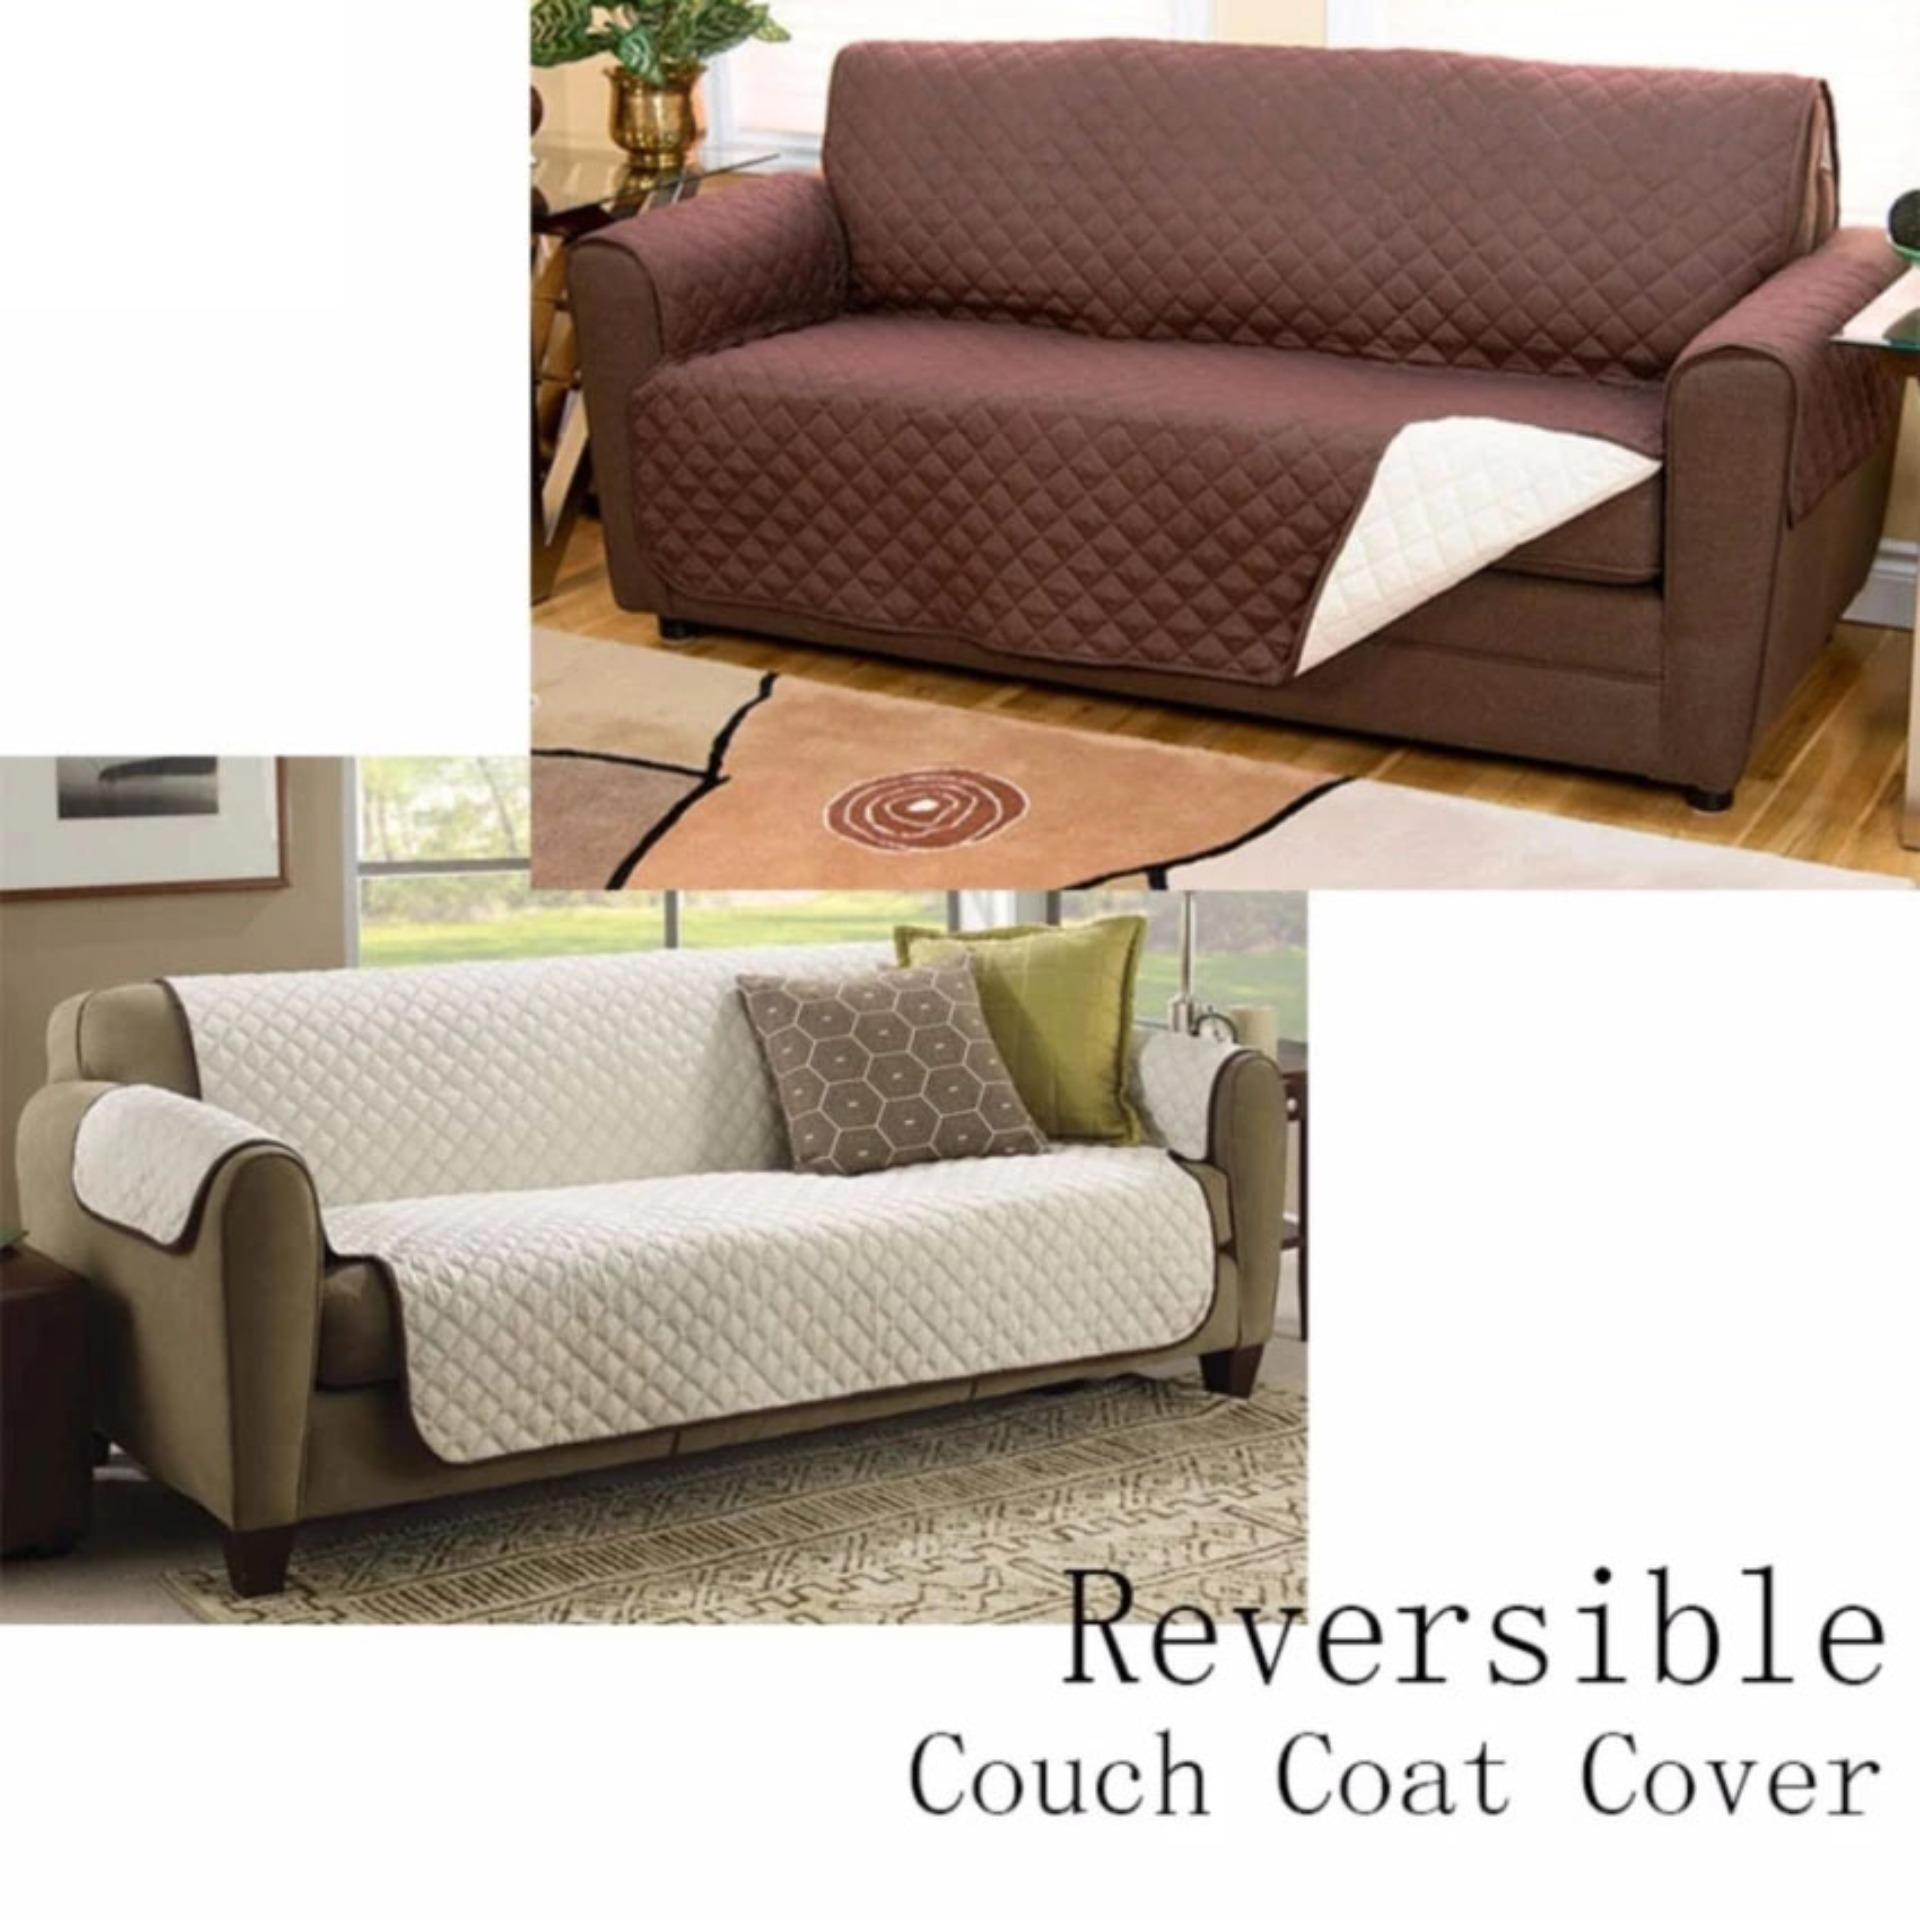 Couch Coat Reversible Sofa Cover (Double Seat)